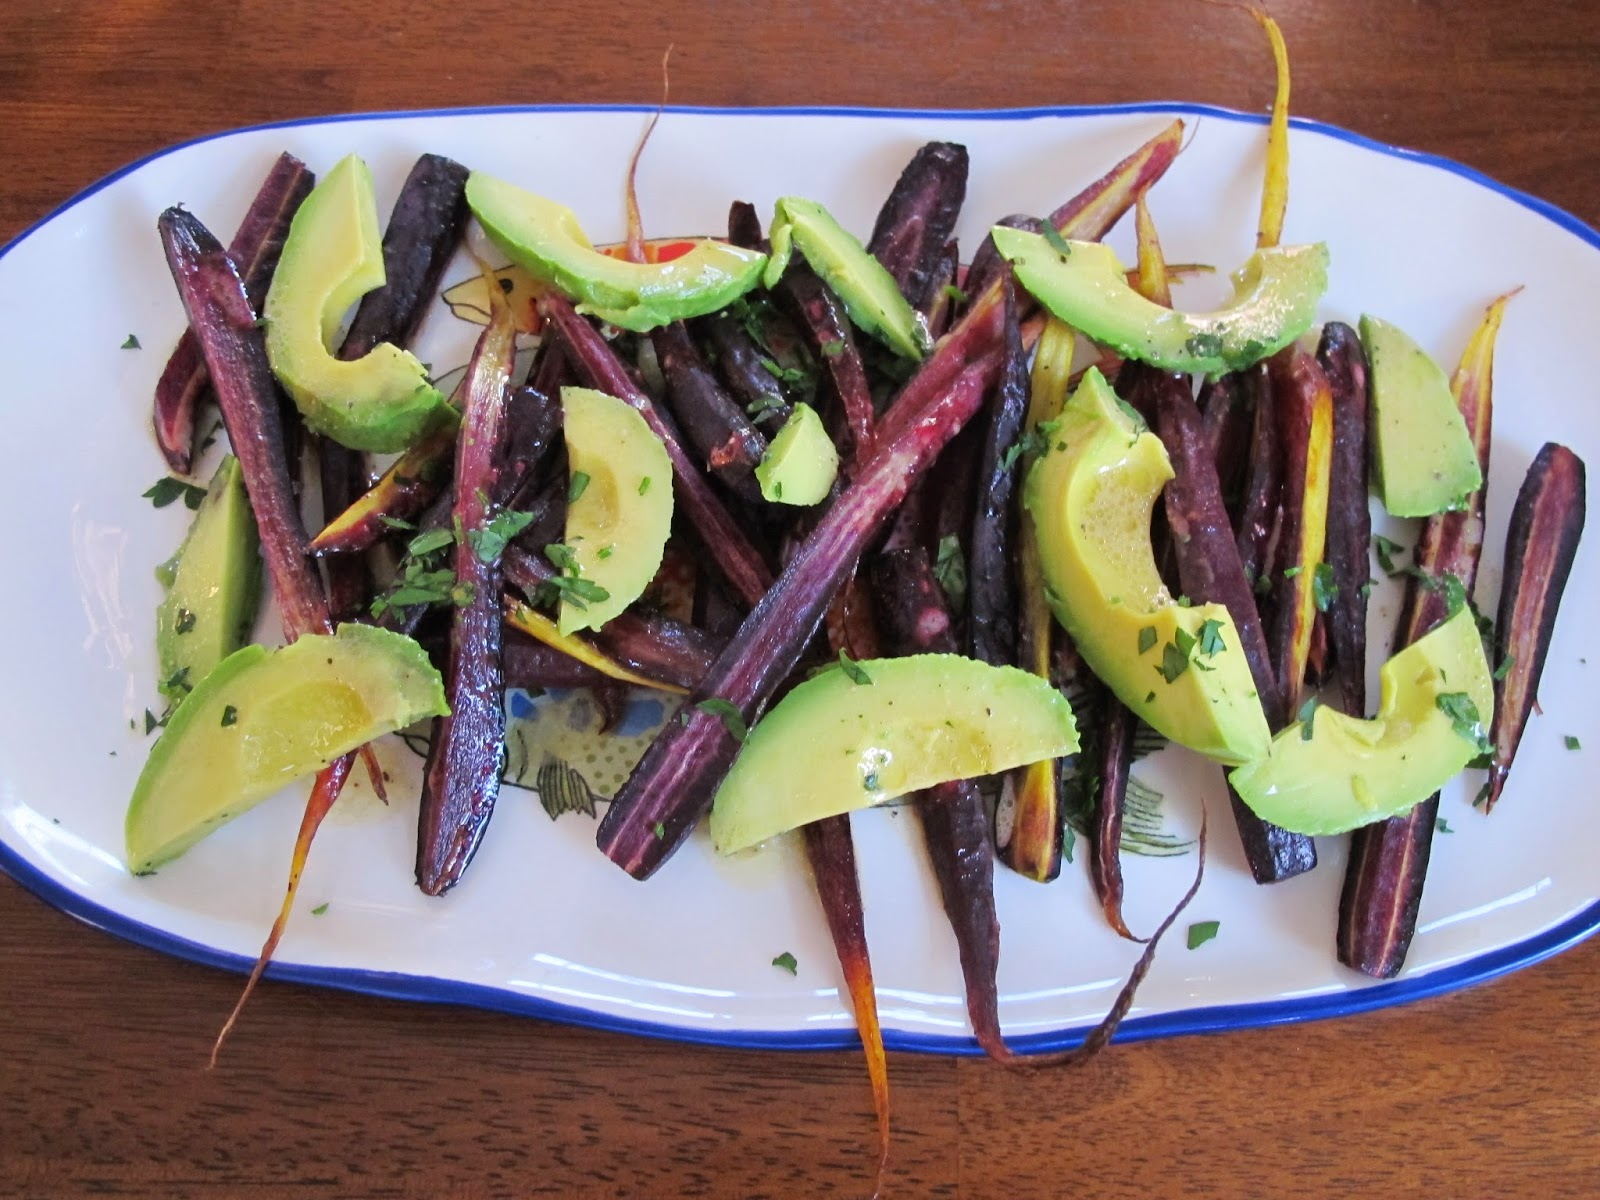 Roasted Carrots with Avocado and Lemon Dressing